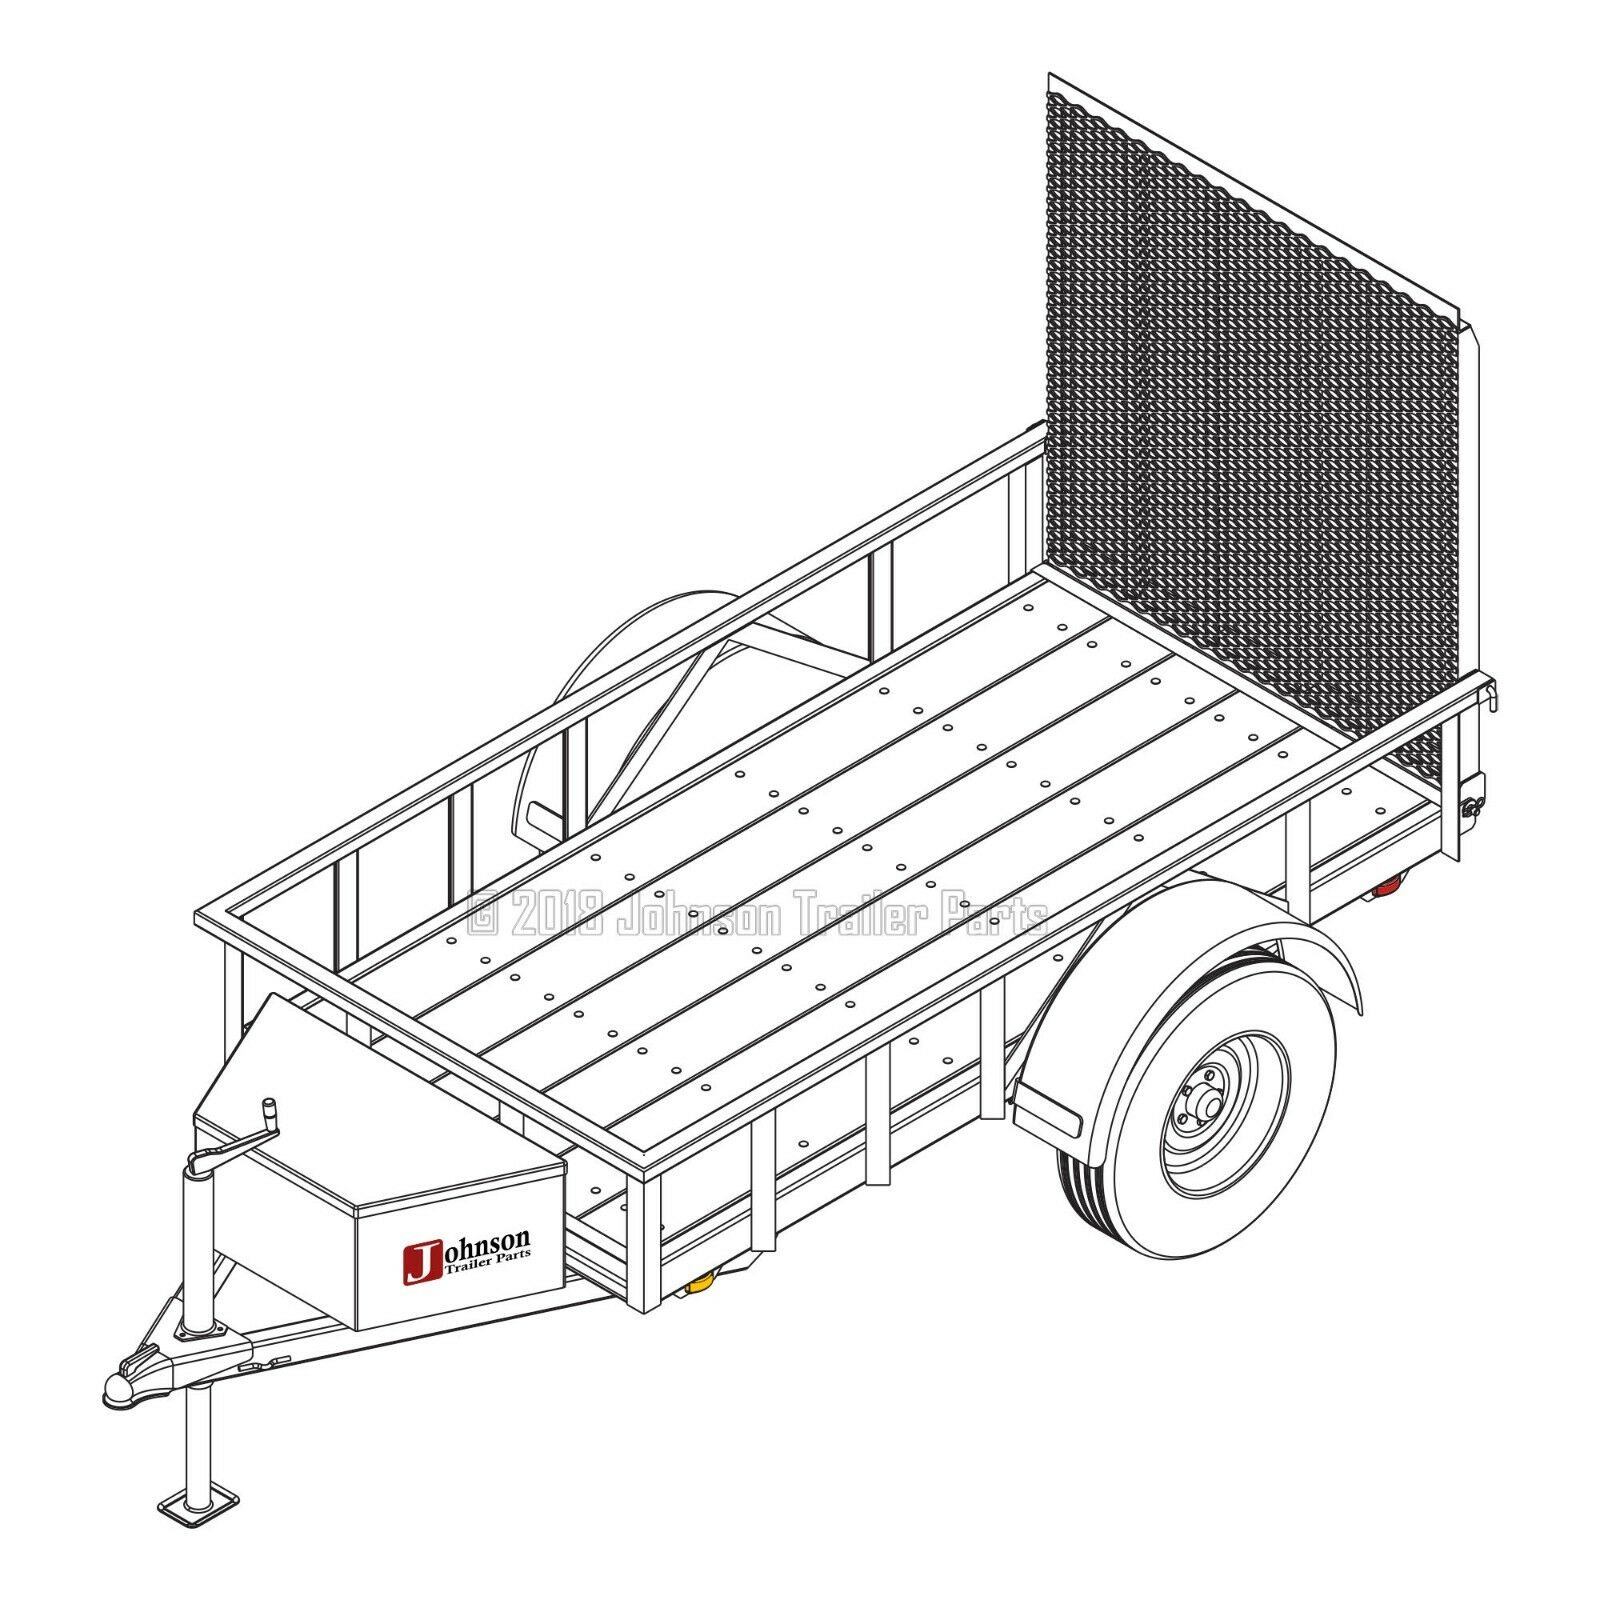 4′ x 8′ Utility Trailer Plans – 3,500 lb Capacity | Trailer Blueprints